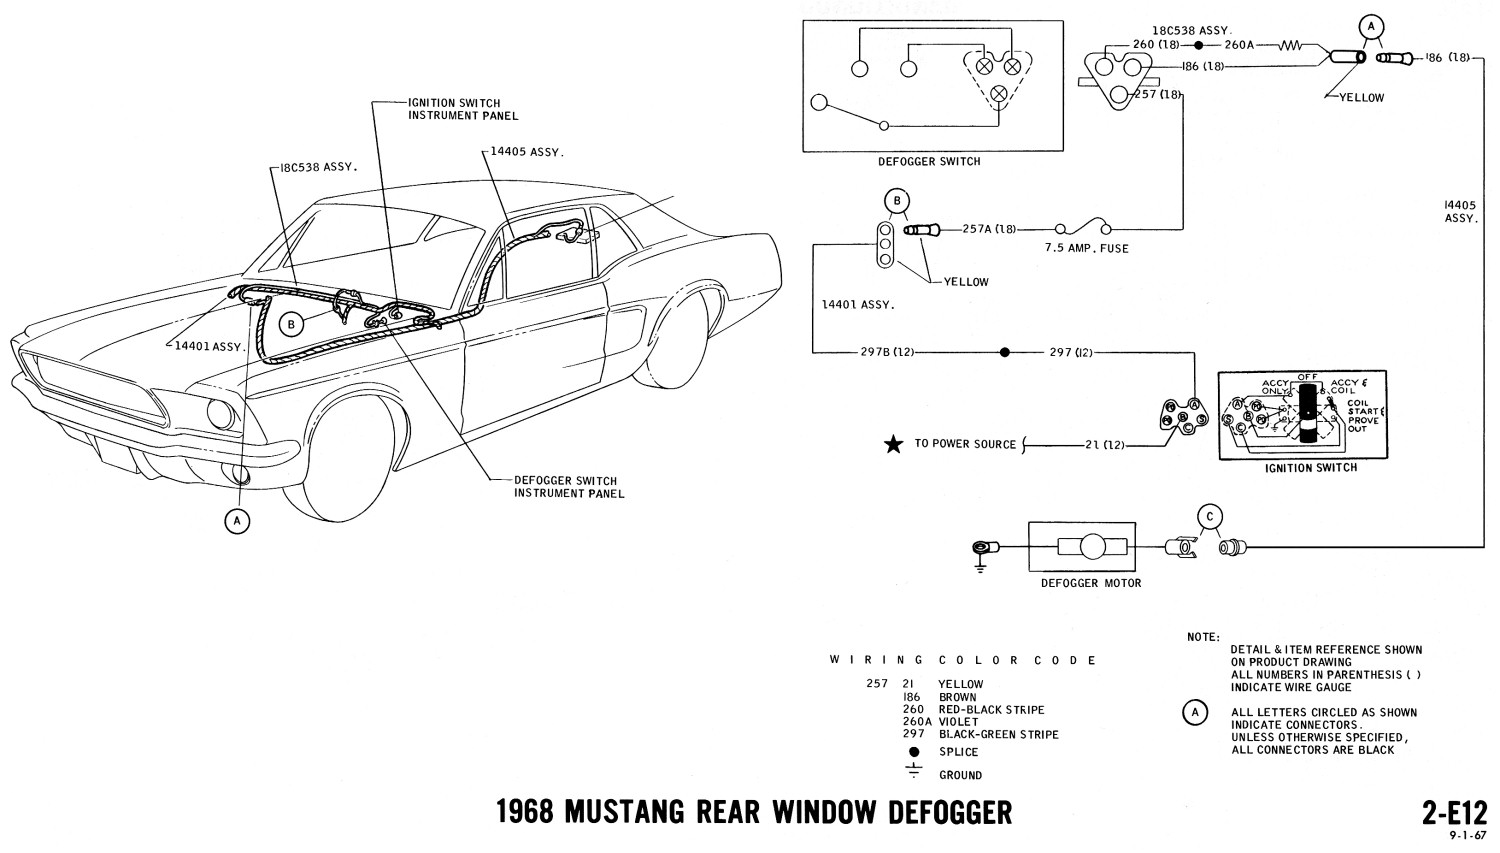 1964 Ford 289 Engine Diagram Wiring Library F100 Diagrams 6 V8 Galaxie Left Defogger